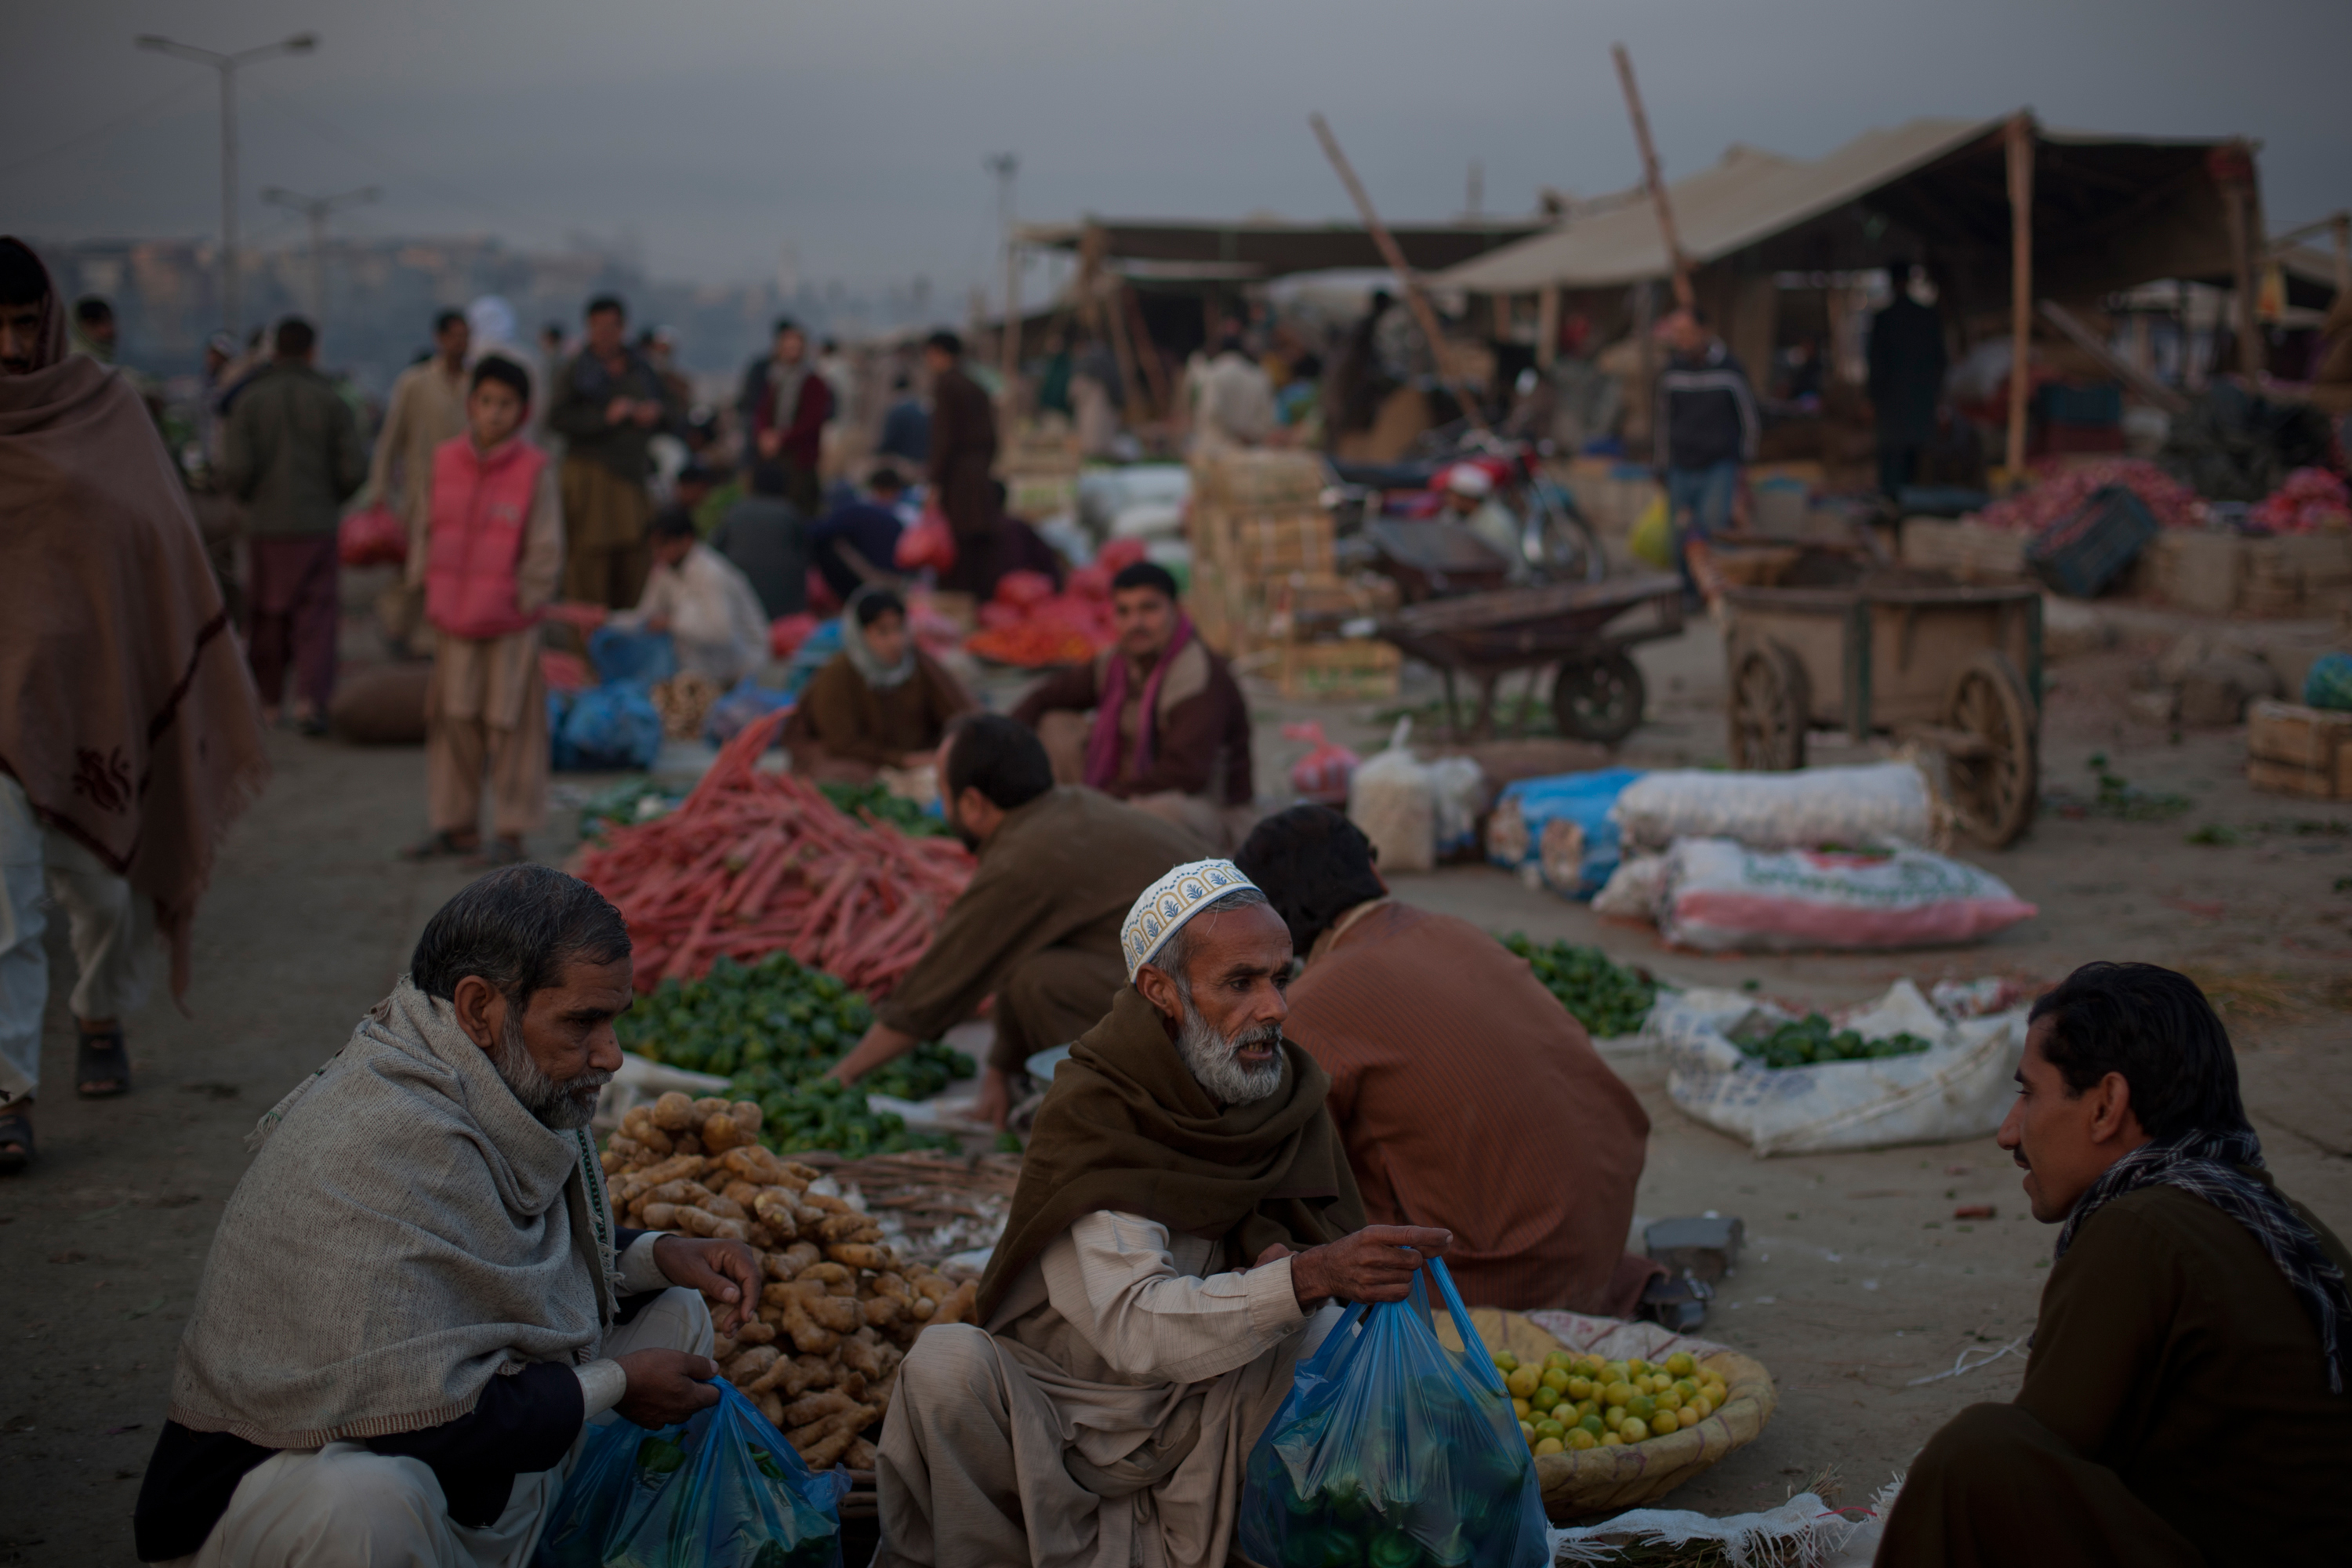 Market sellers in Islamabad, Pakistan, struggle with high food prices